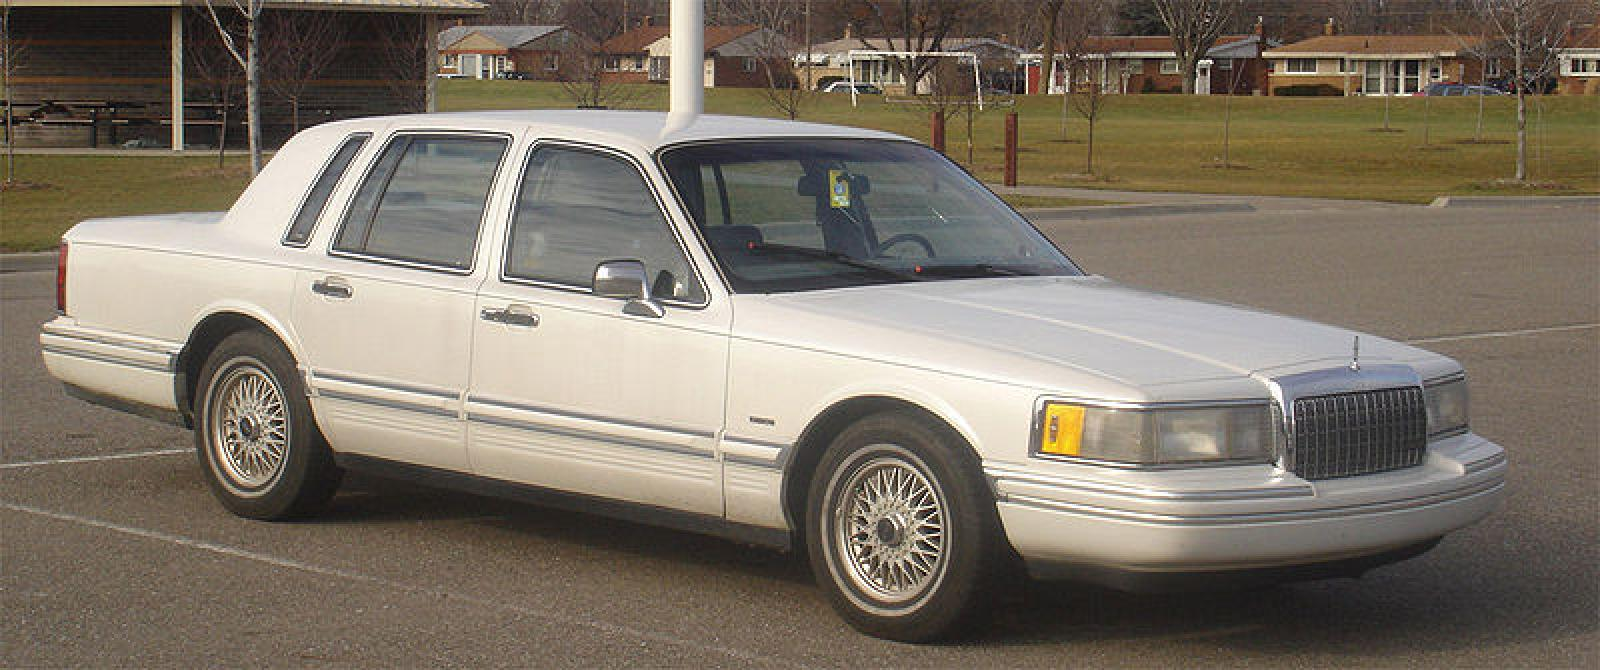 1992 Lincoln Continental - Information and photos - ZombieDrive